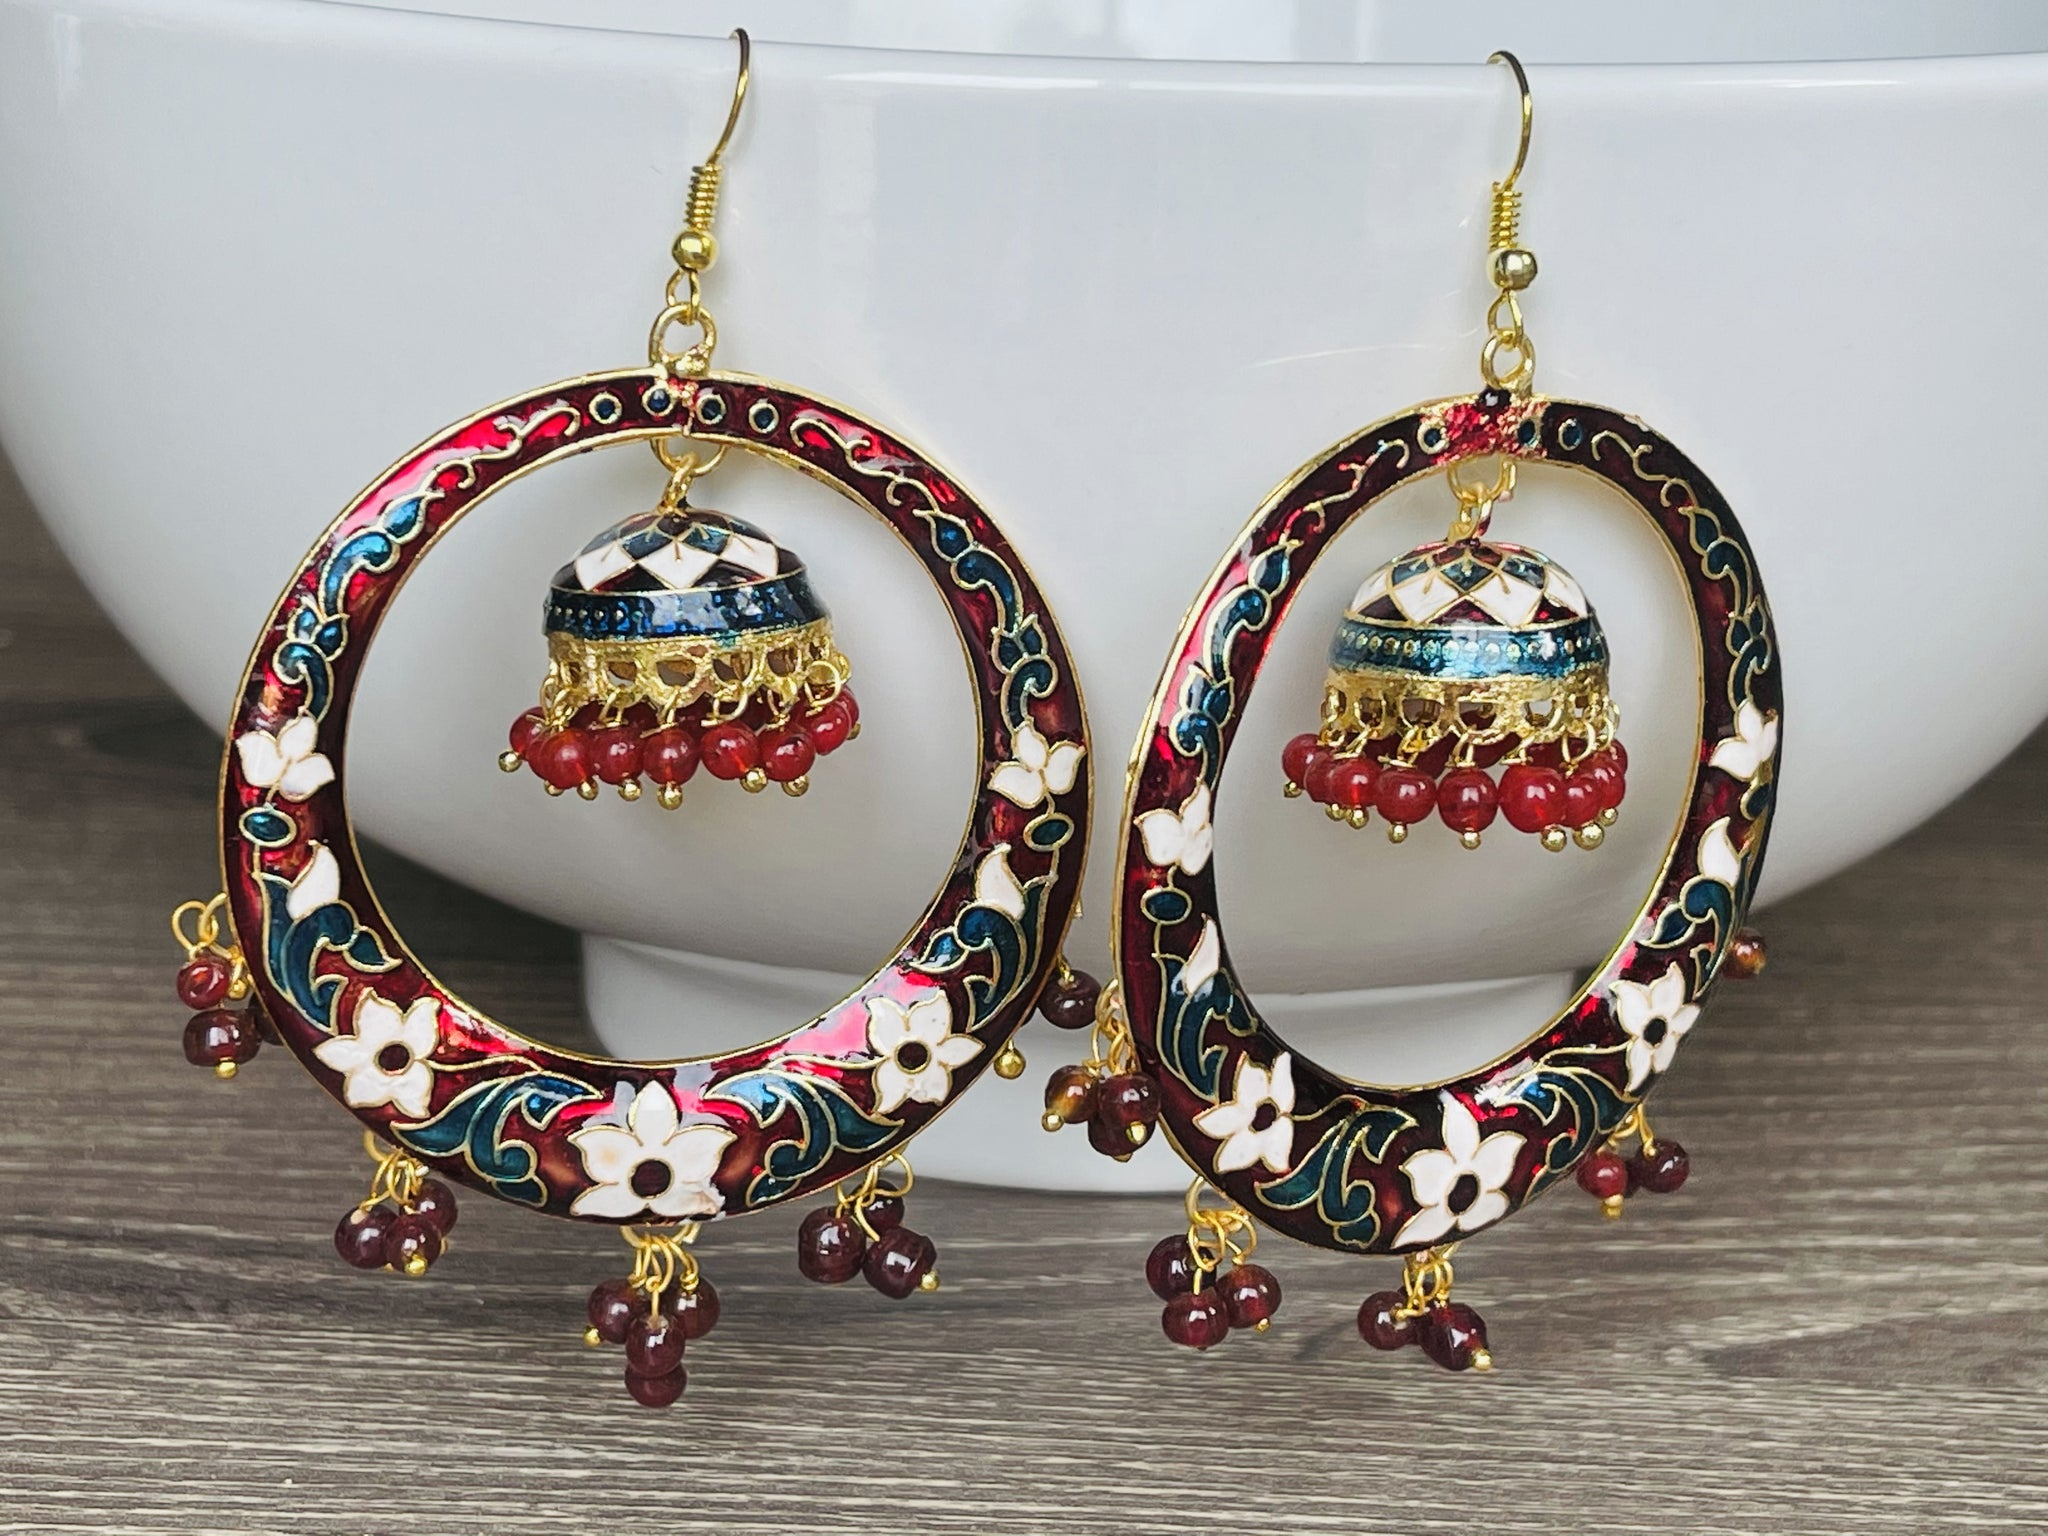 Maroon White and Blue Meenakari Chandbali Jhumka Earrings